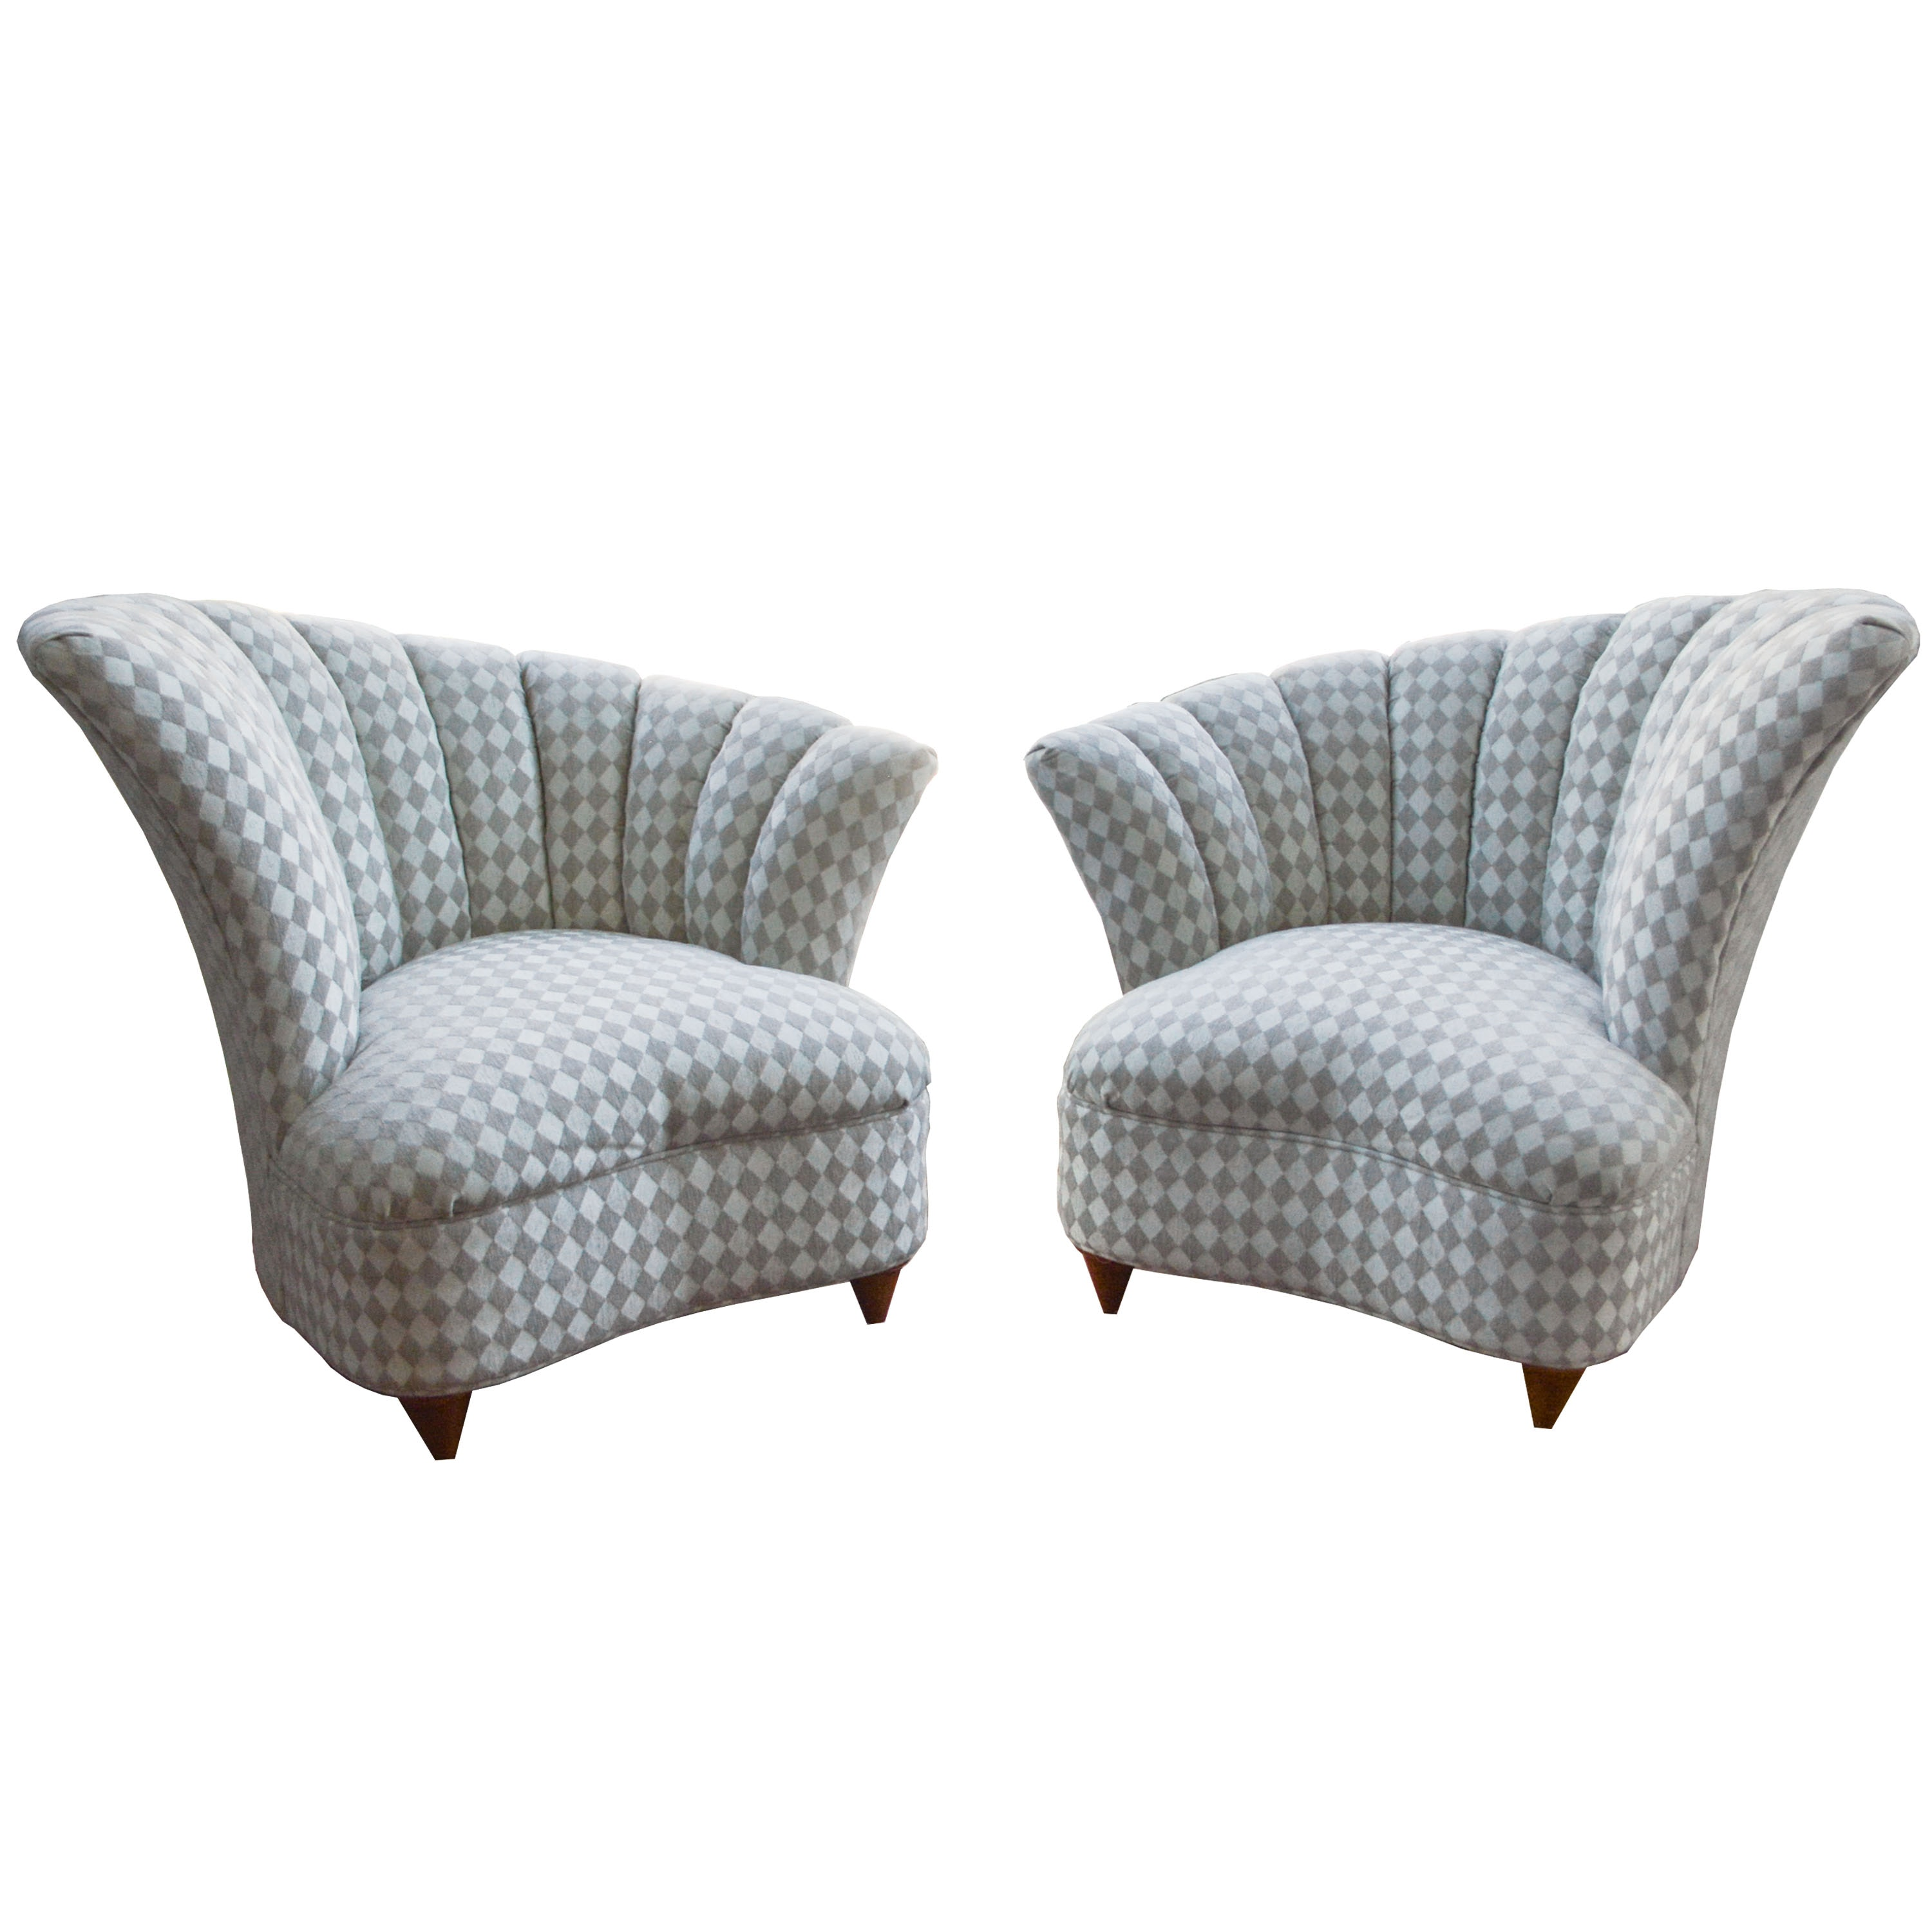 Pair of Deco Revival Style Lounge Chairs